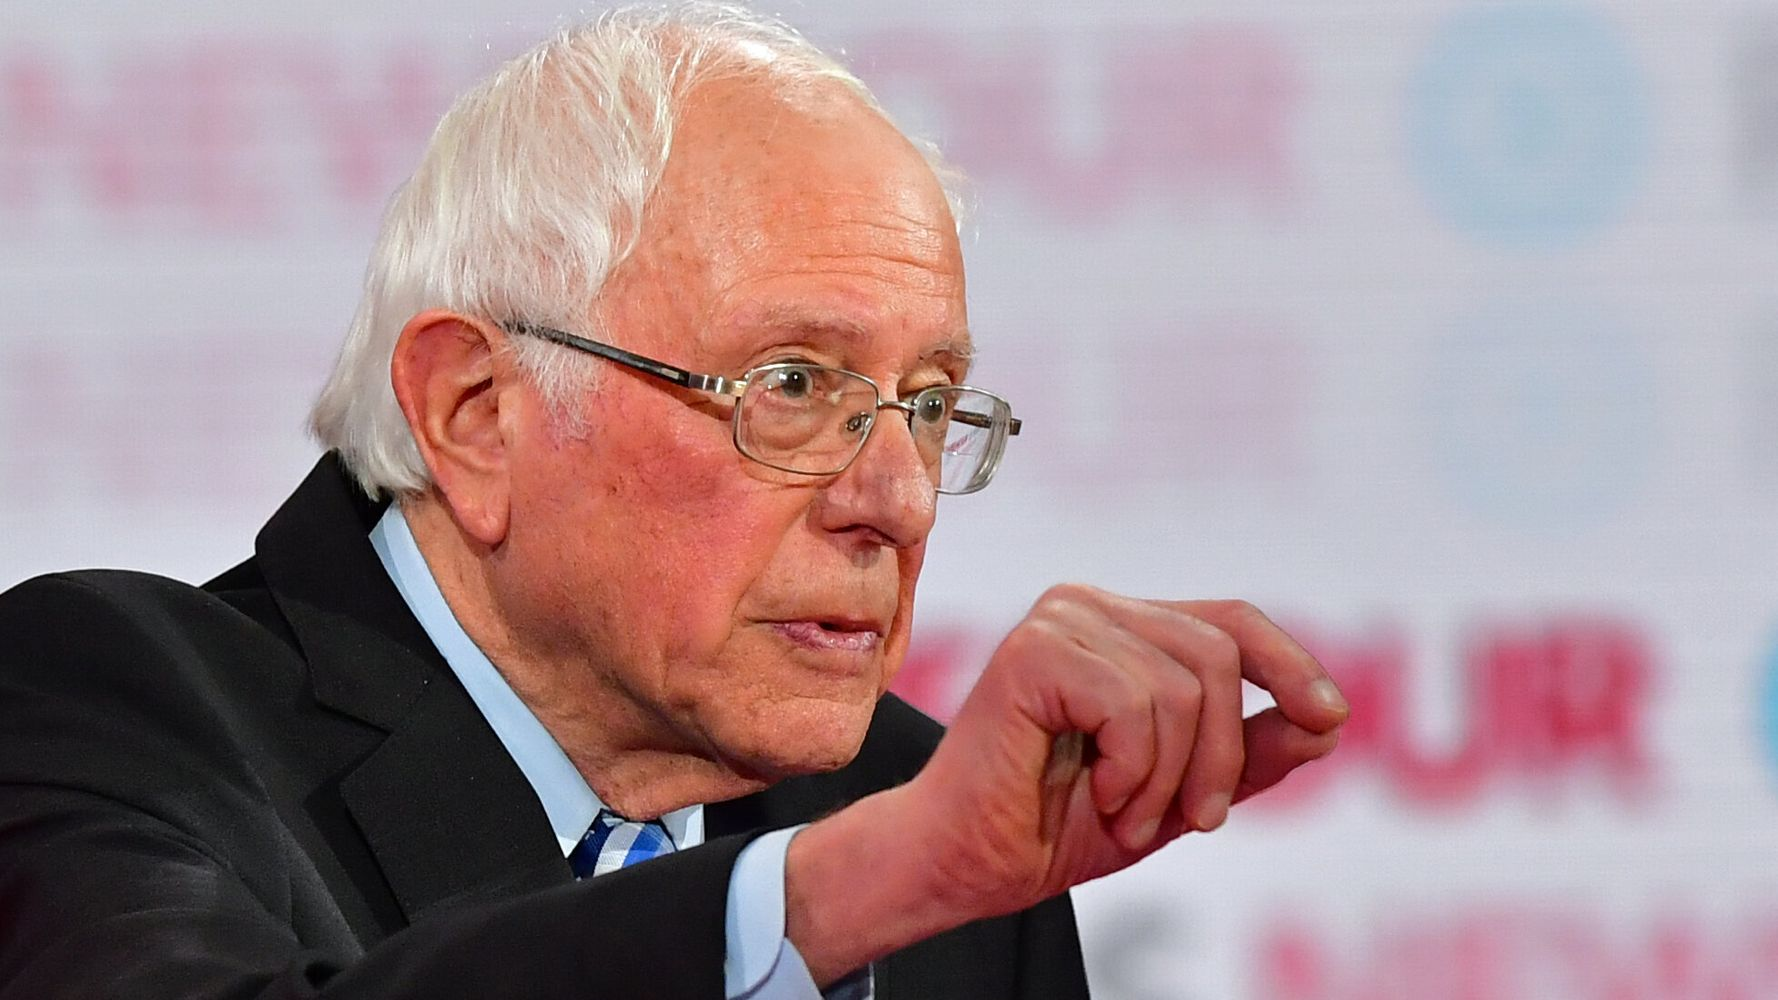 Bernie Sanders Explains Why Low Unemployment Doesn't Mean Americans Are Better Off